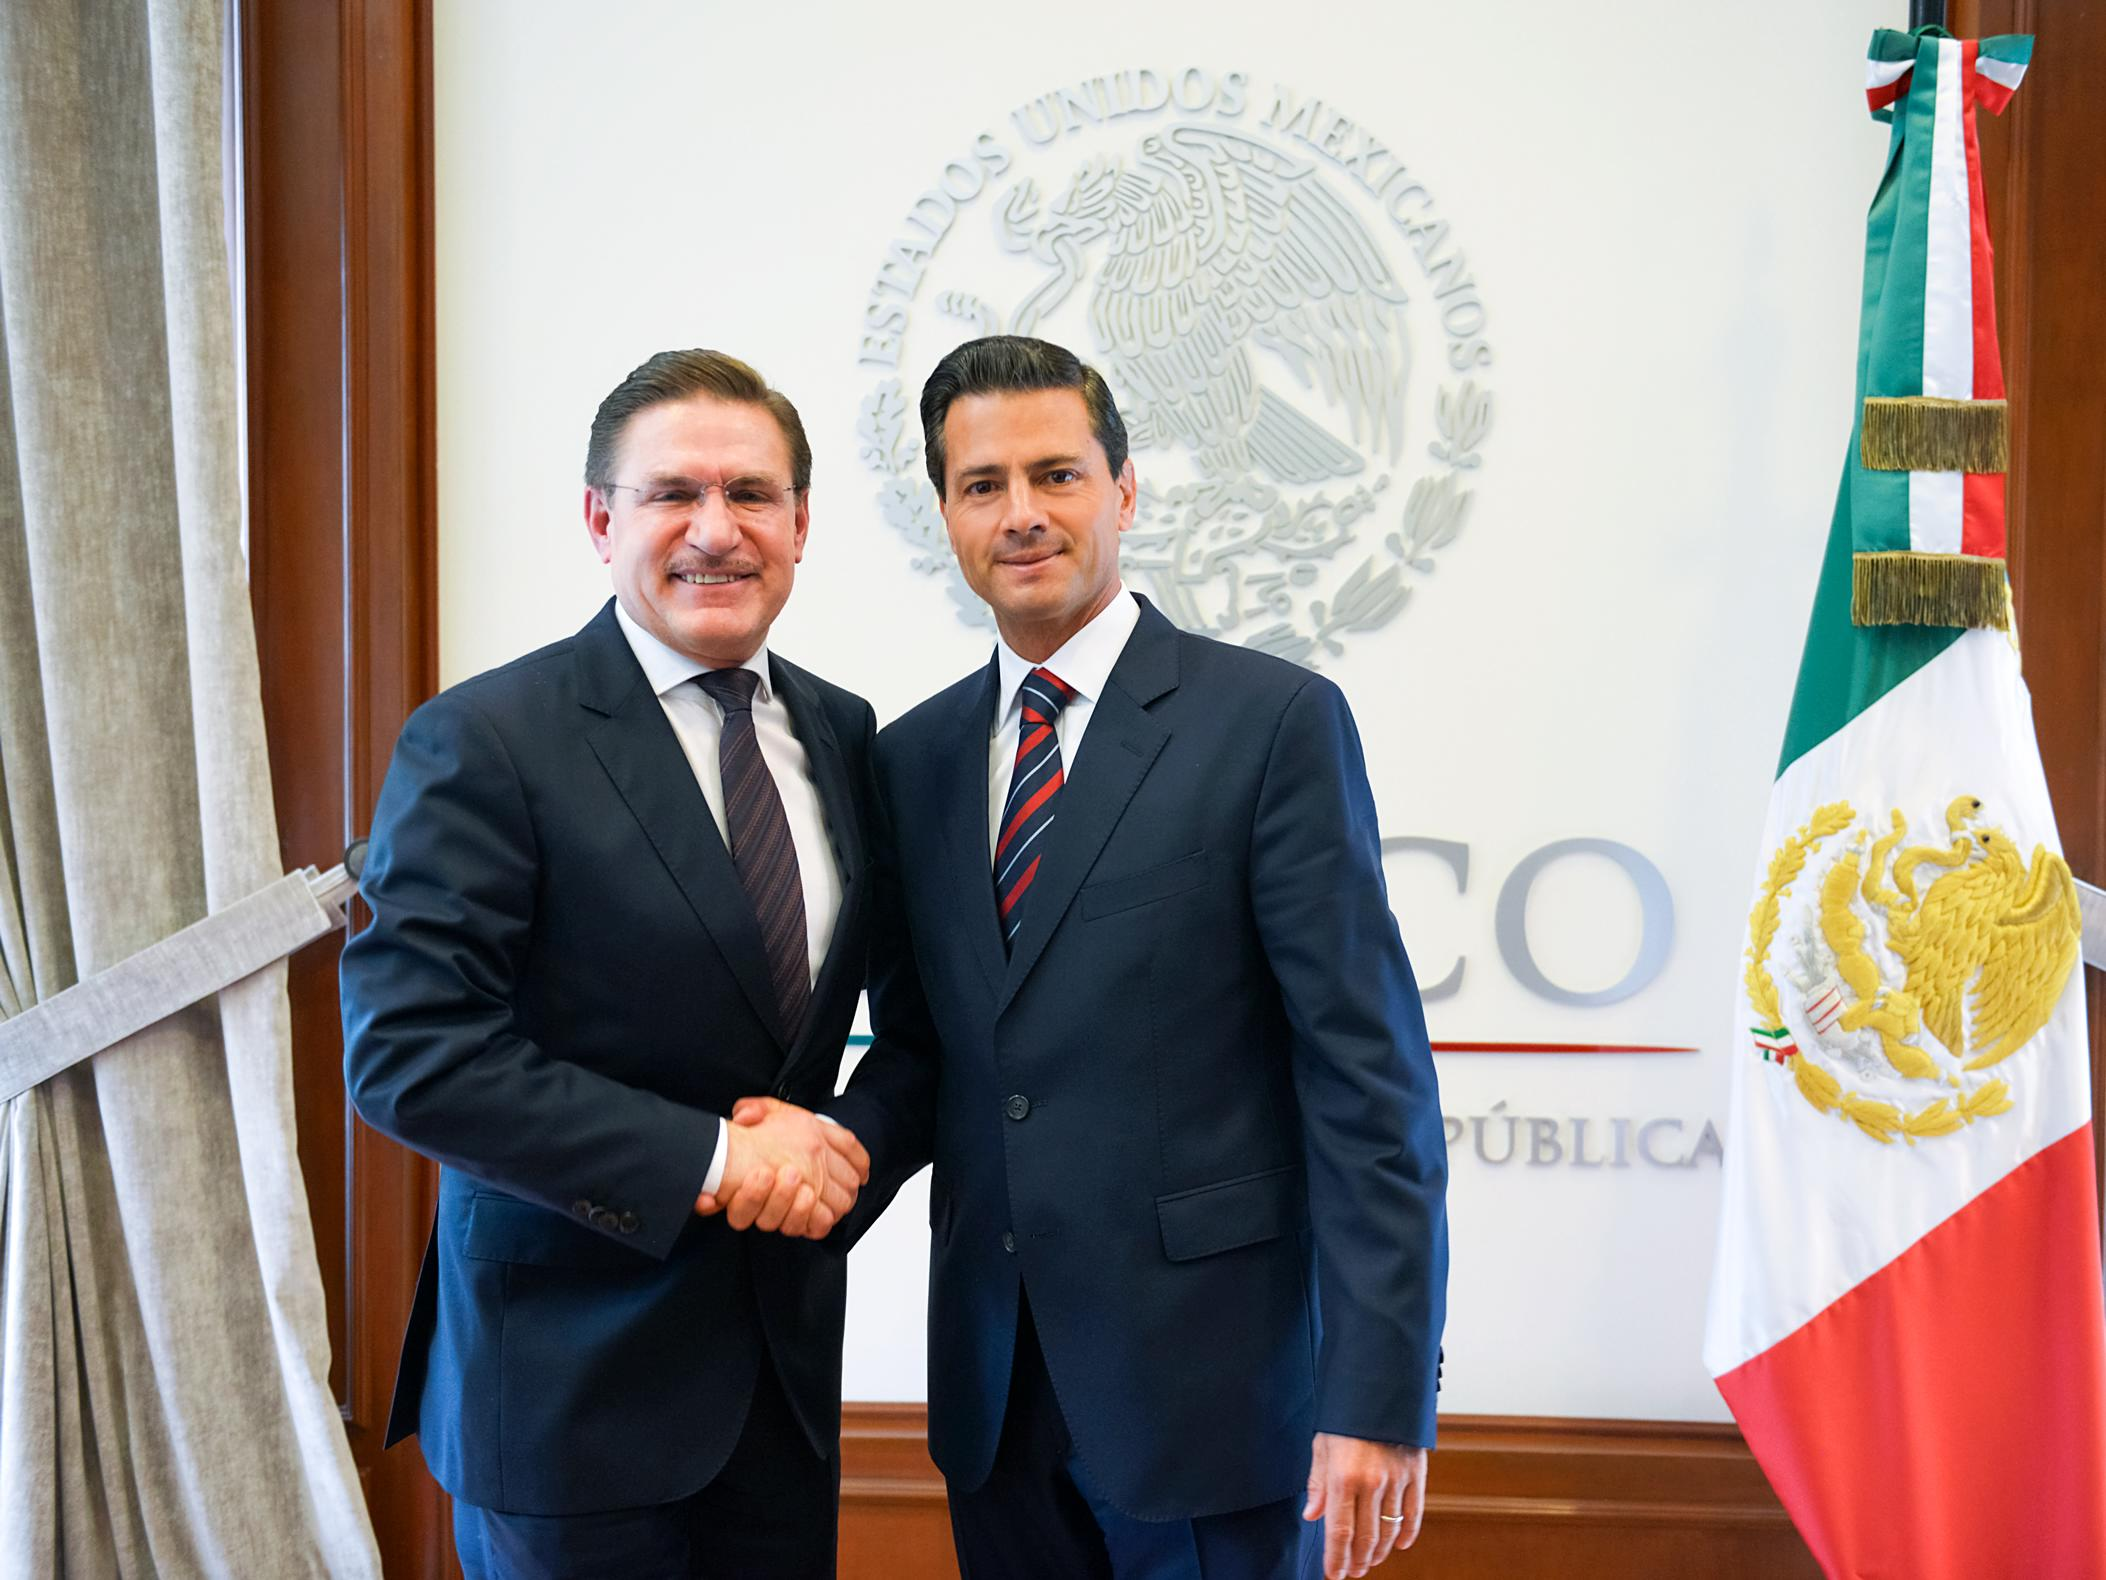 Rosas Aispuro told President Peña Nieto of various projects he will undertake in its administration in order to boost the state's development.